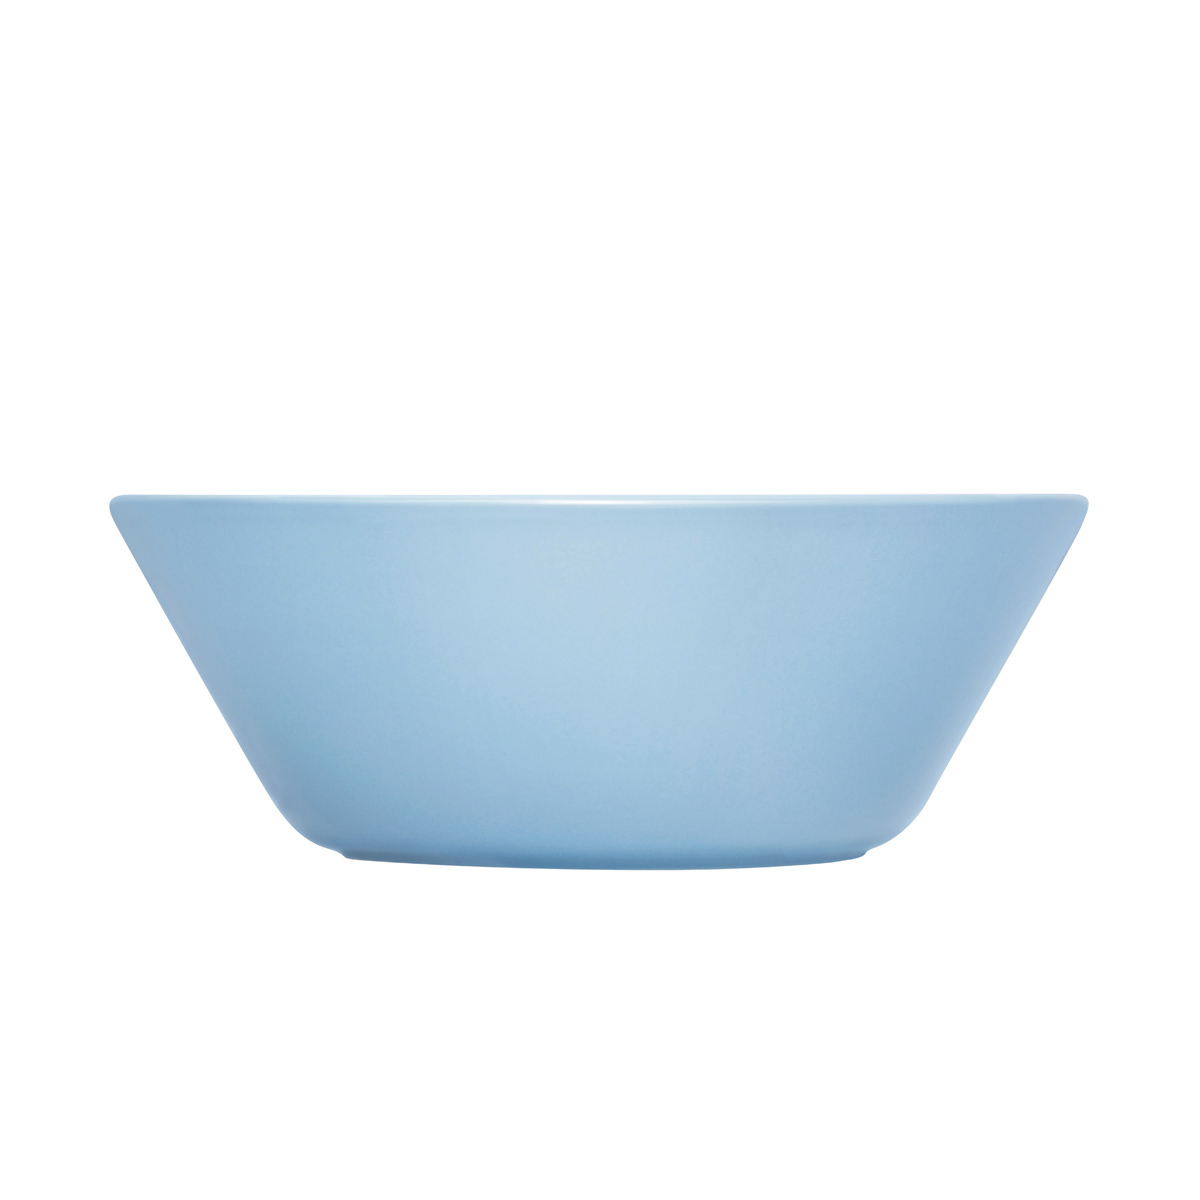 iittala teema light blue soup cereal bowl iittala teema light blue dinnerware. Black Bedroom Furniture Sets. Home Design Ideas